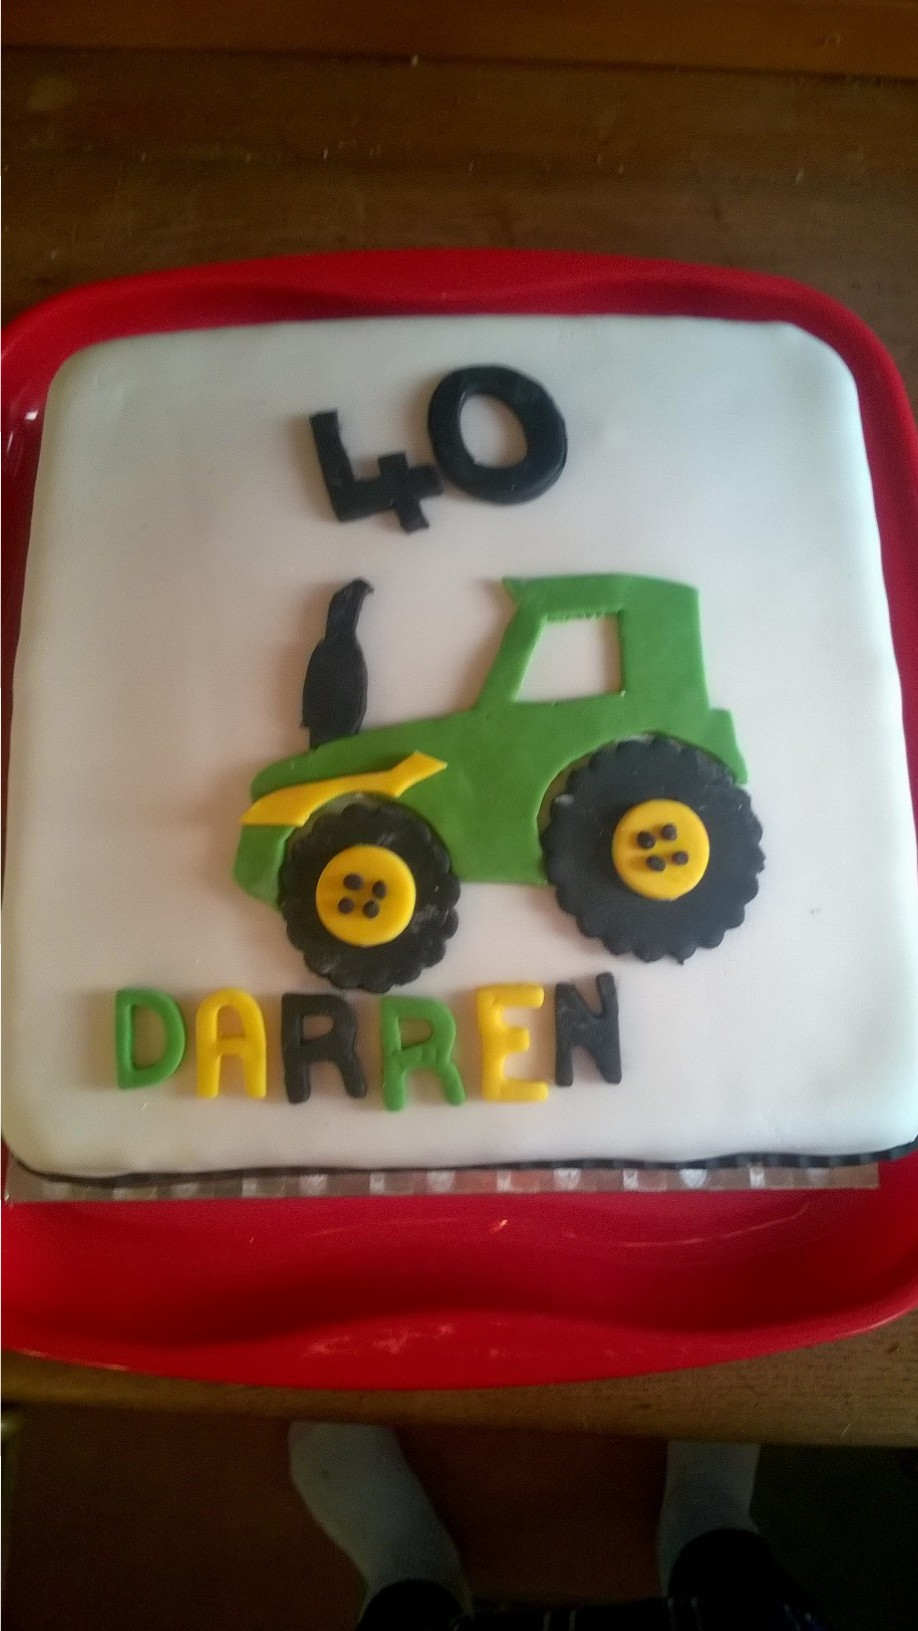 A 40th Birthday Cake Design Featuring Tractor Decoration Made From Icing